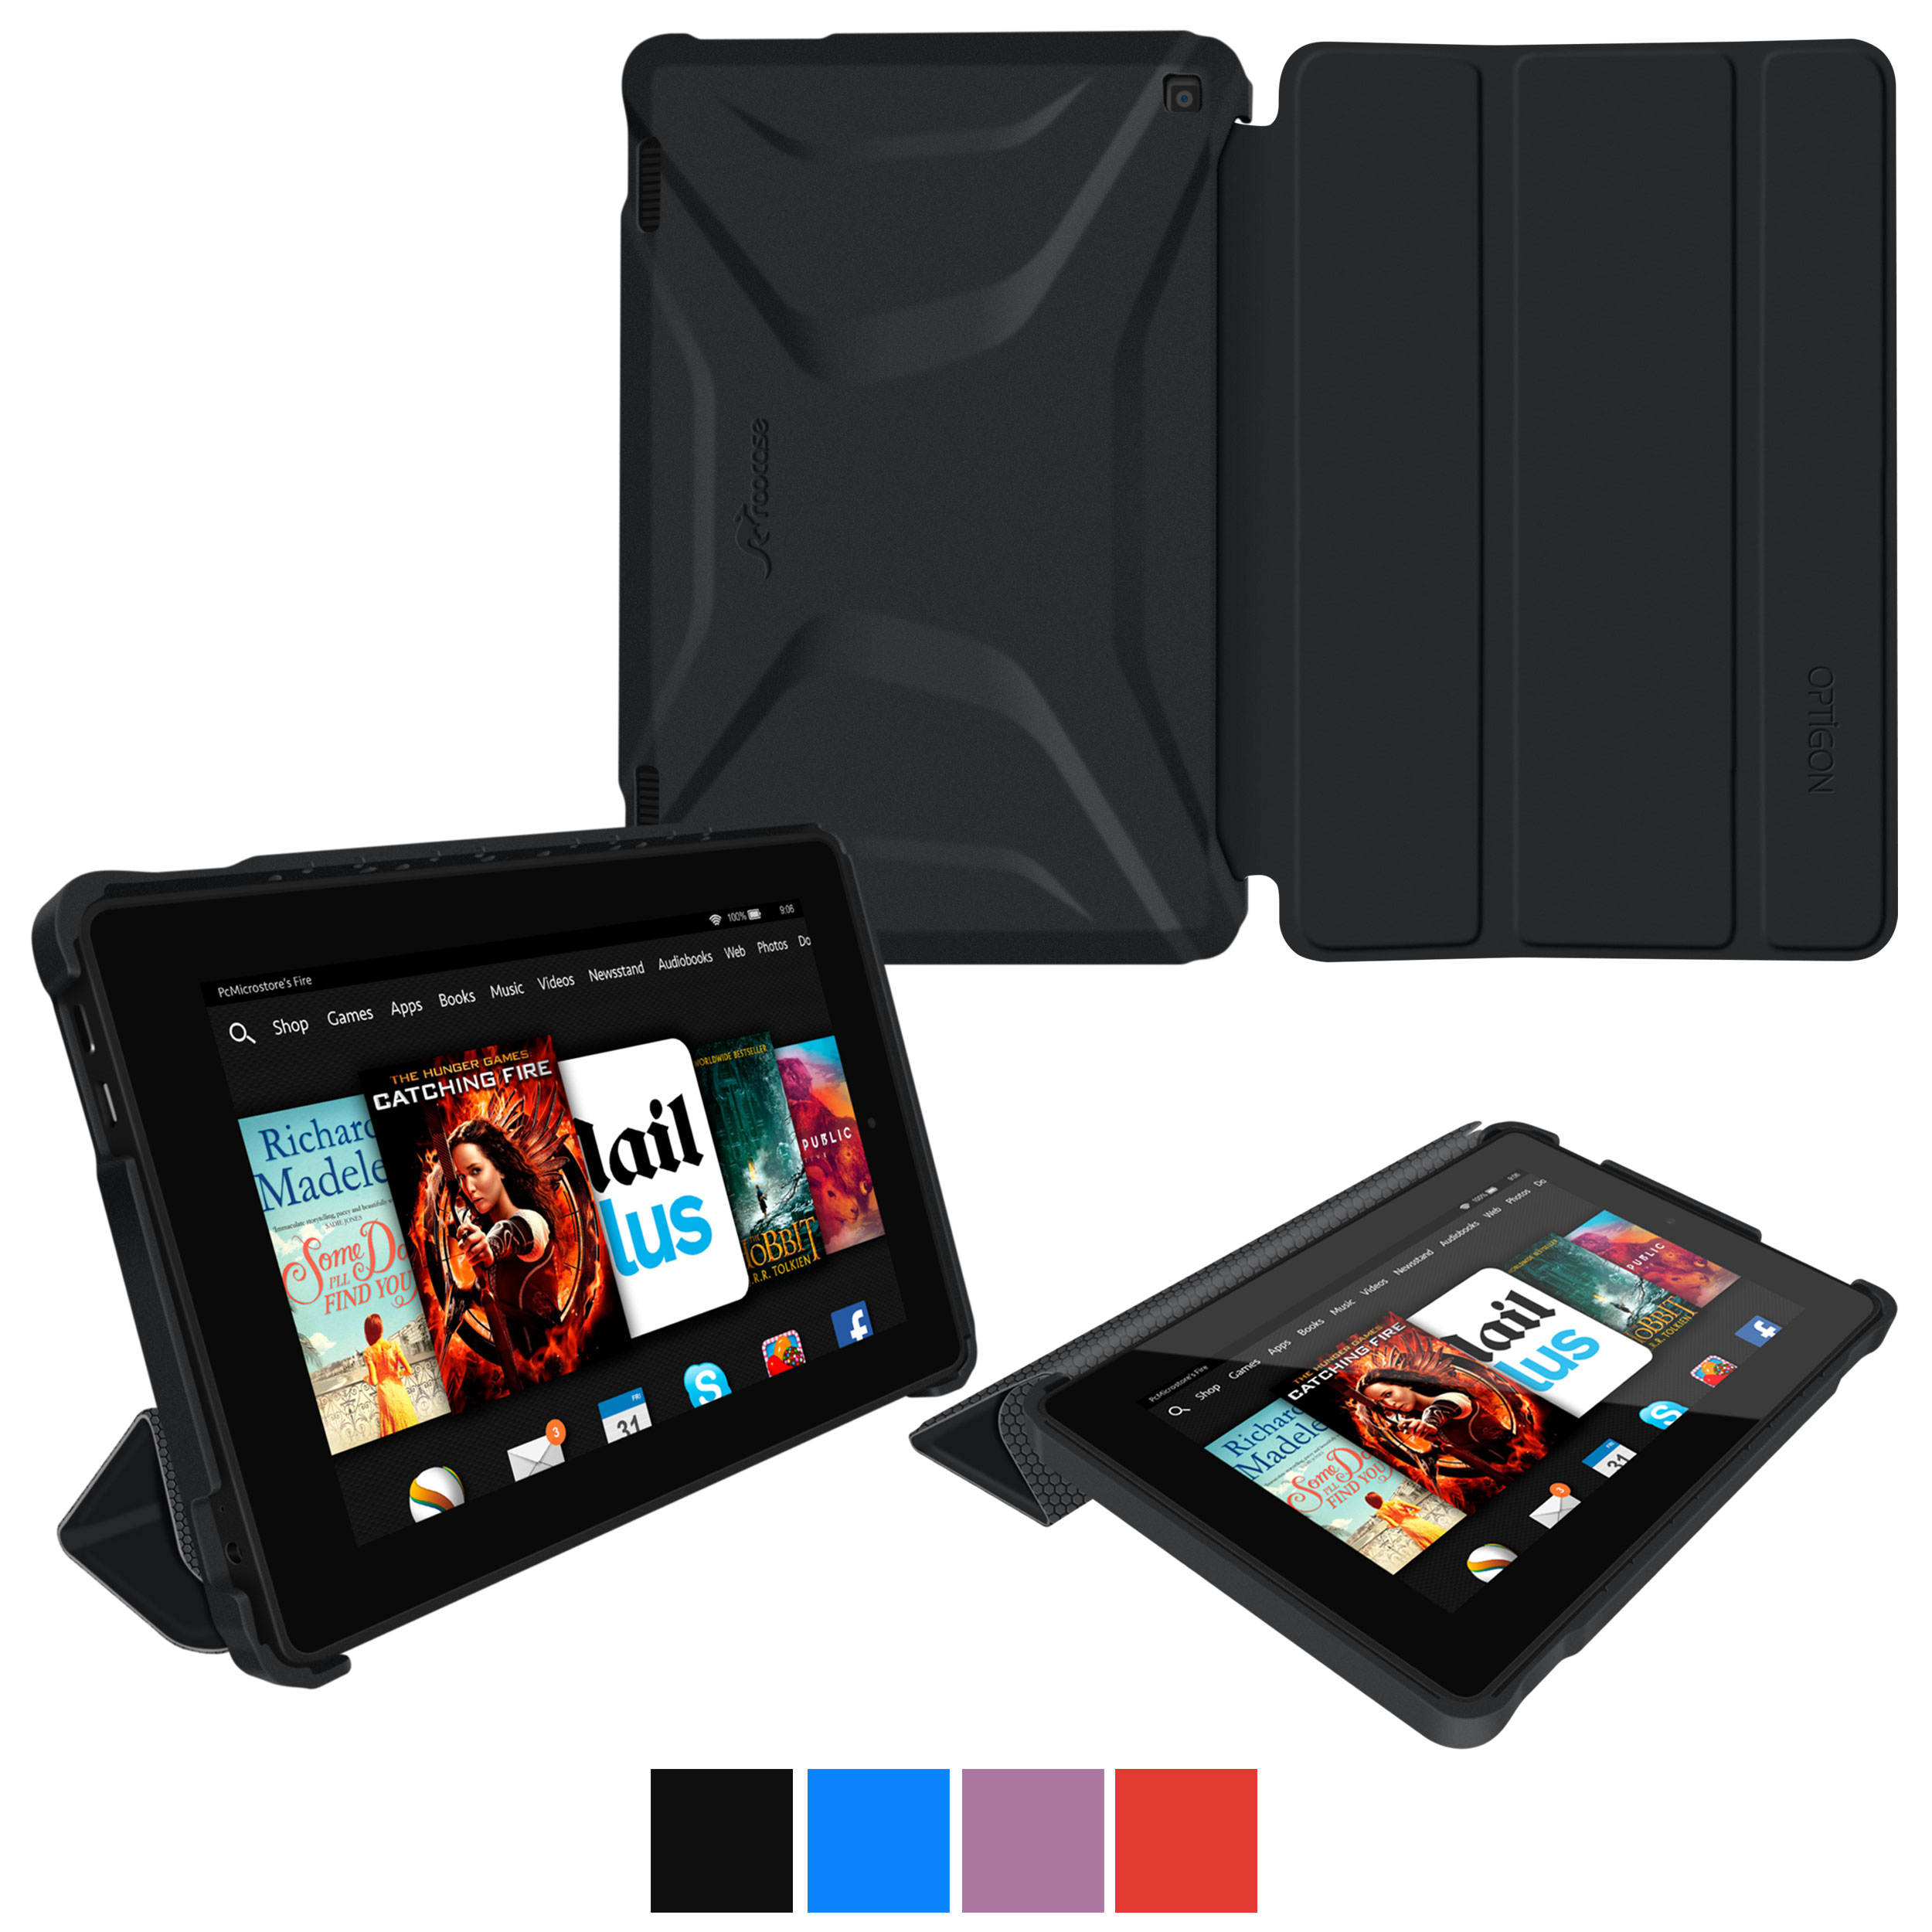 Fire HD 7 2014 Case, roocase Optigon Kindle Fire HD 7 2014 3D Slim Shell Case with Stand for Amazon Kindle Fire HD 7 2014 (4th Generation) [Supports Sleep/Wake Function]